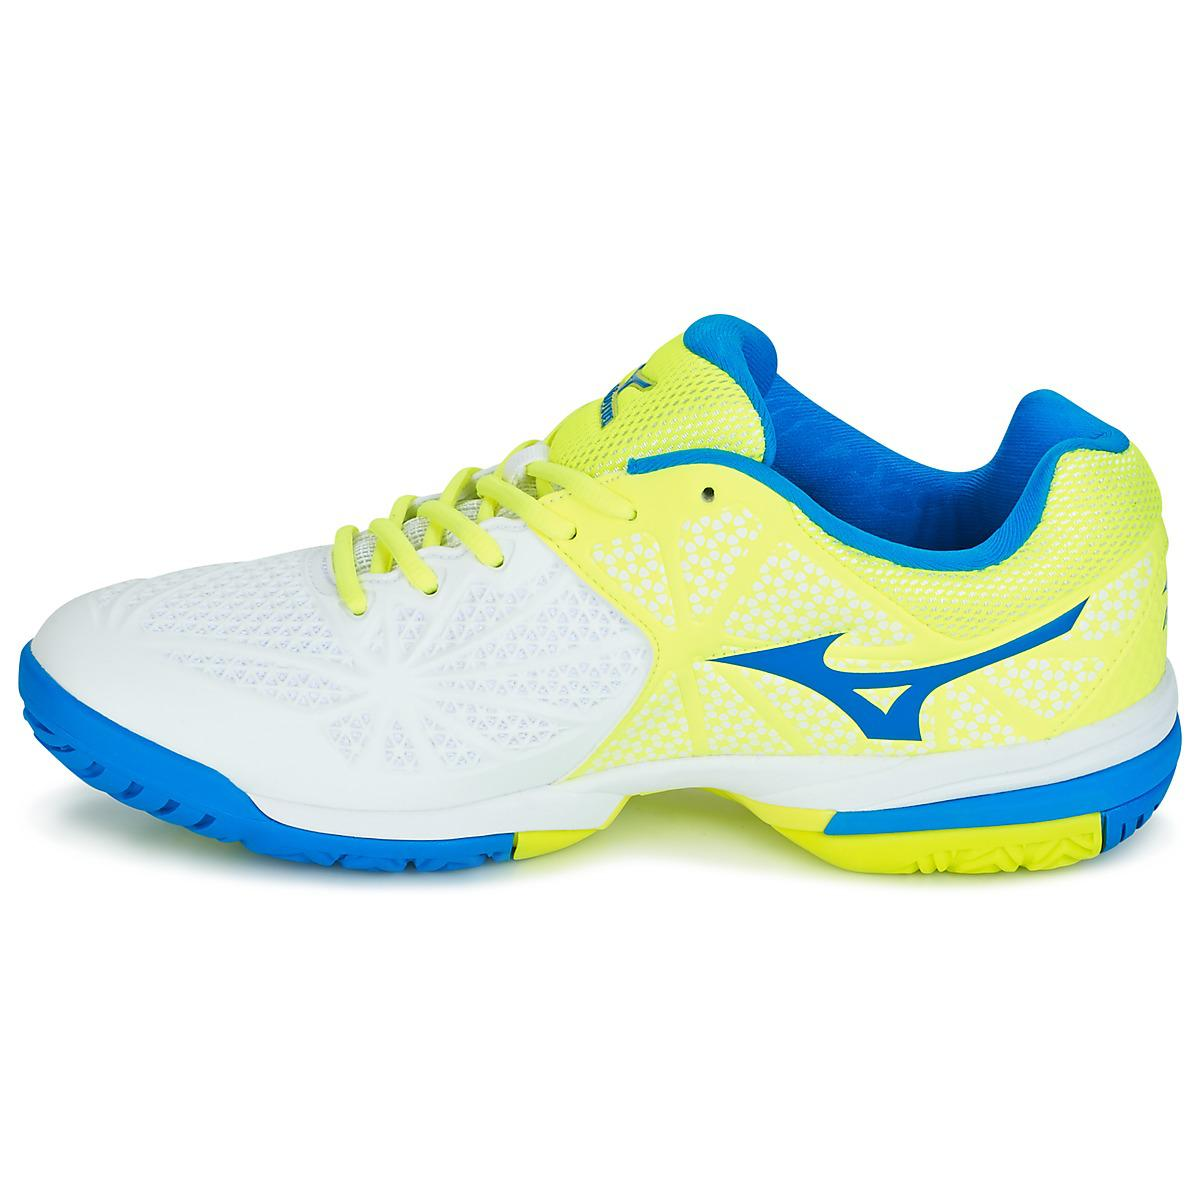 Mizuno Wave Exceed Tour 2 Cc Men's Tennis Trainers (shoes) In White for Men